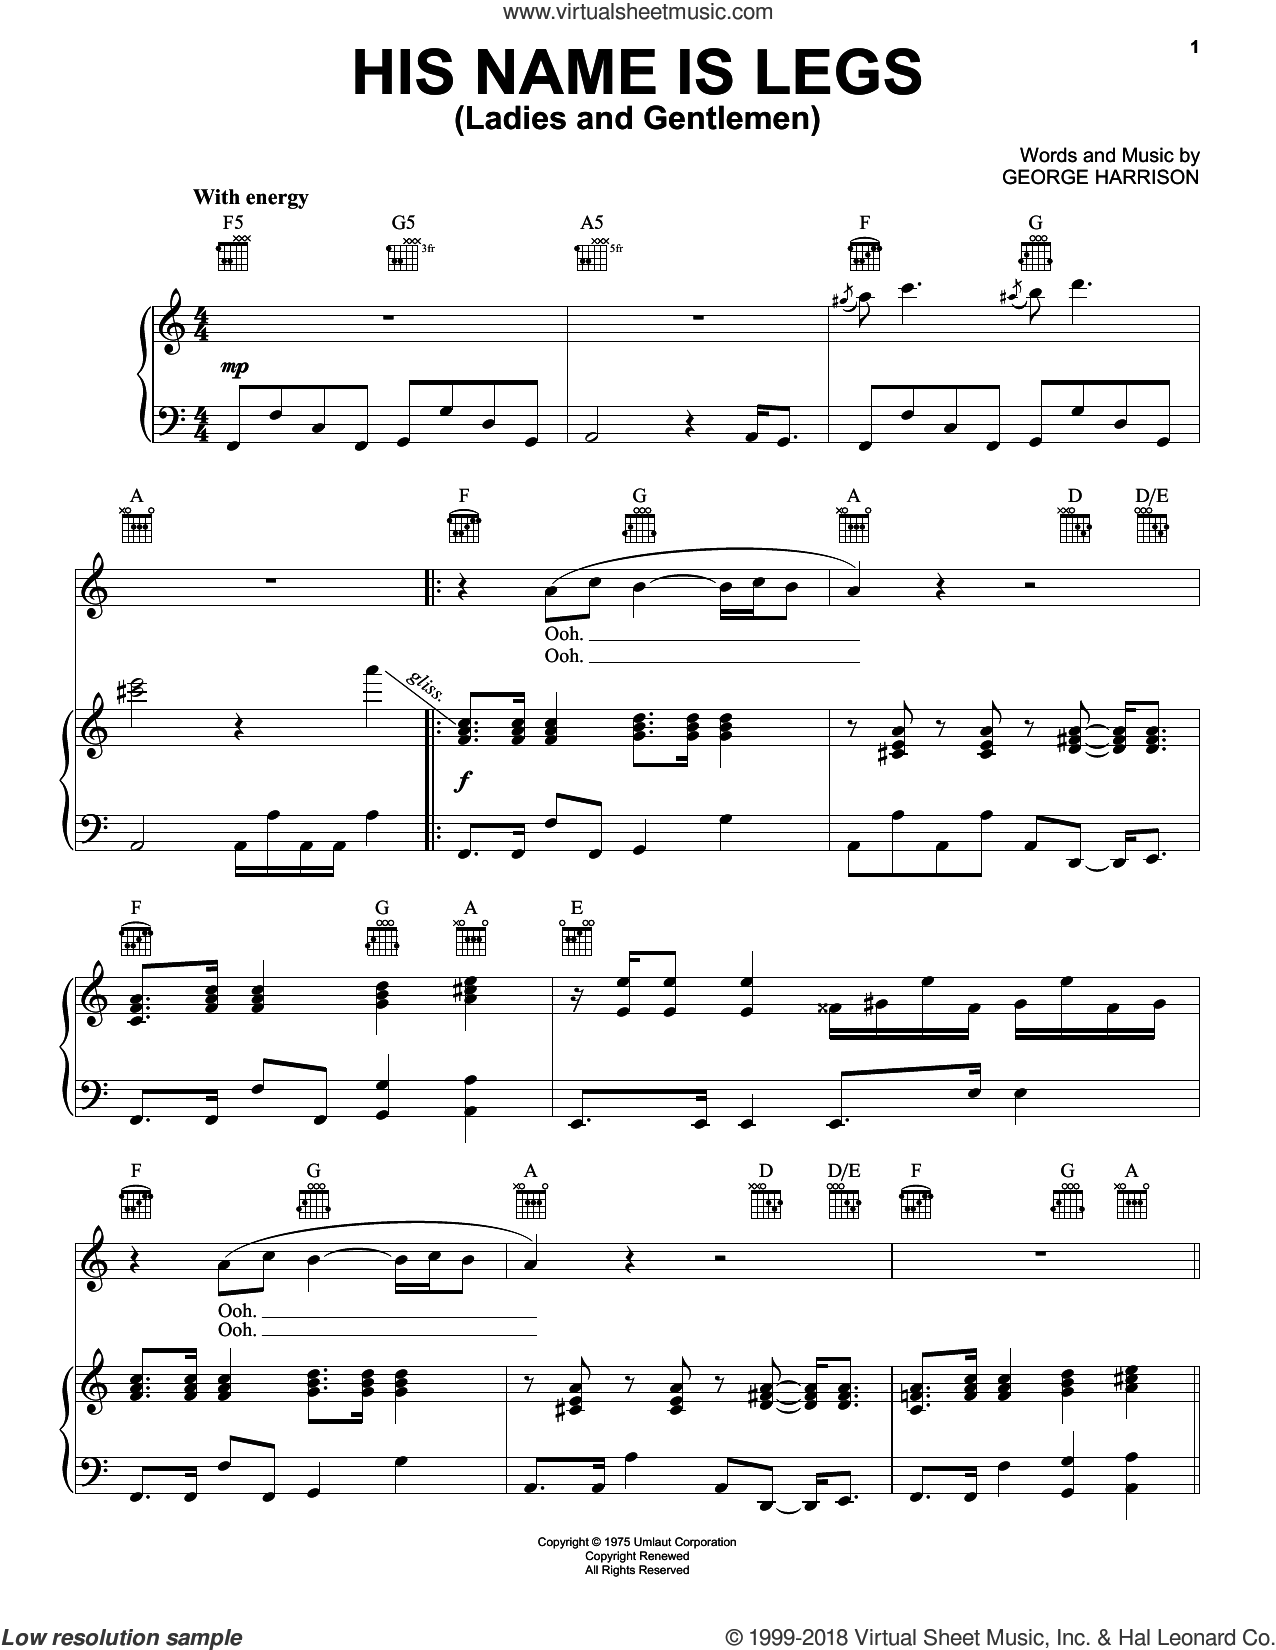 His Name Is Legs (Ladies And Gentlemen) sheet music for voice, piano or guitar by George Harrison, intermediate skill level